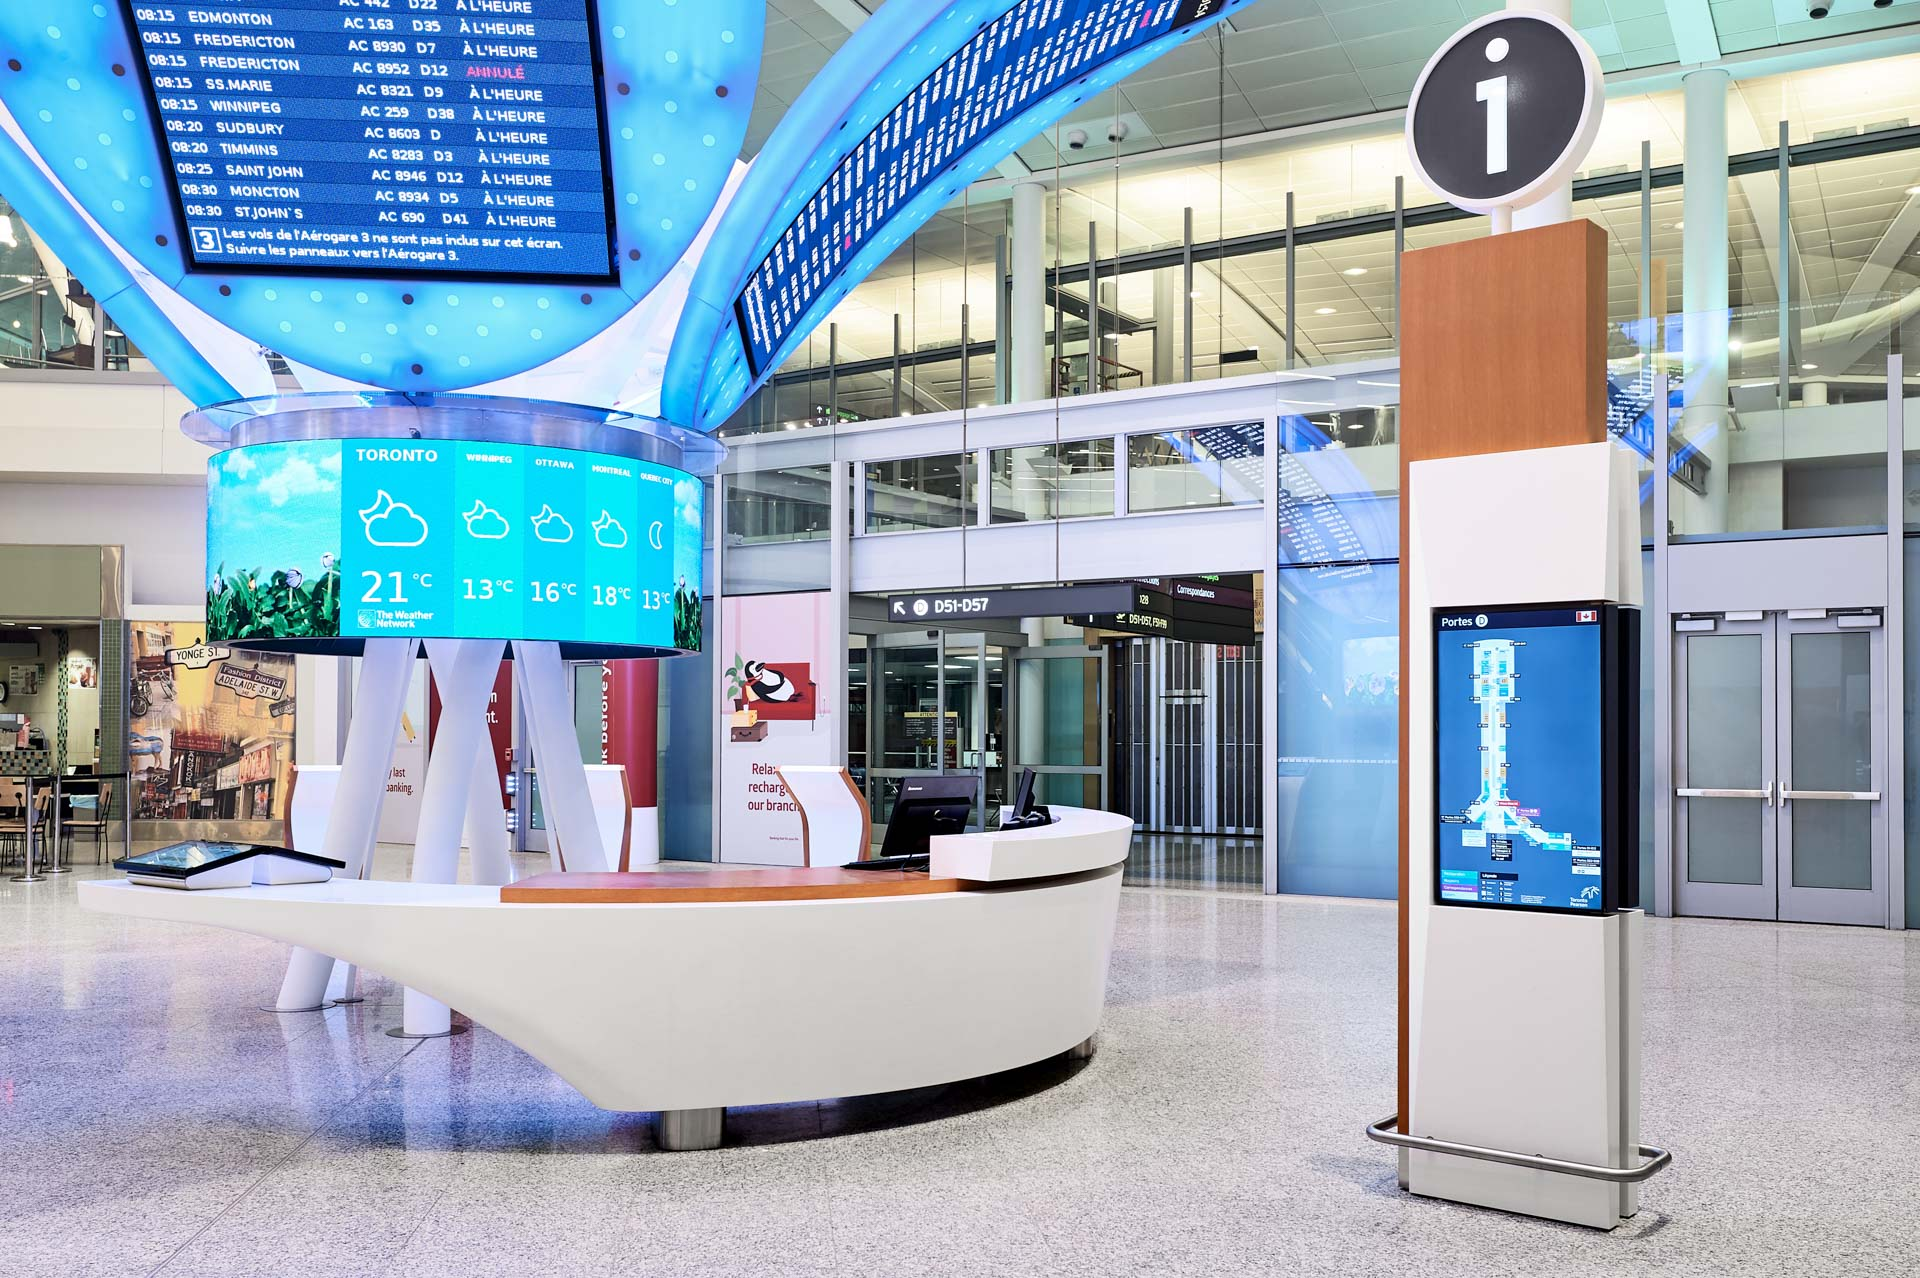 airport information zone